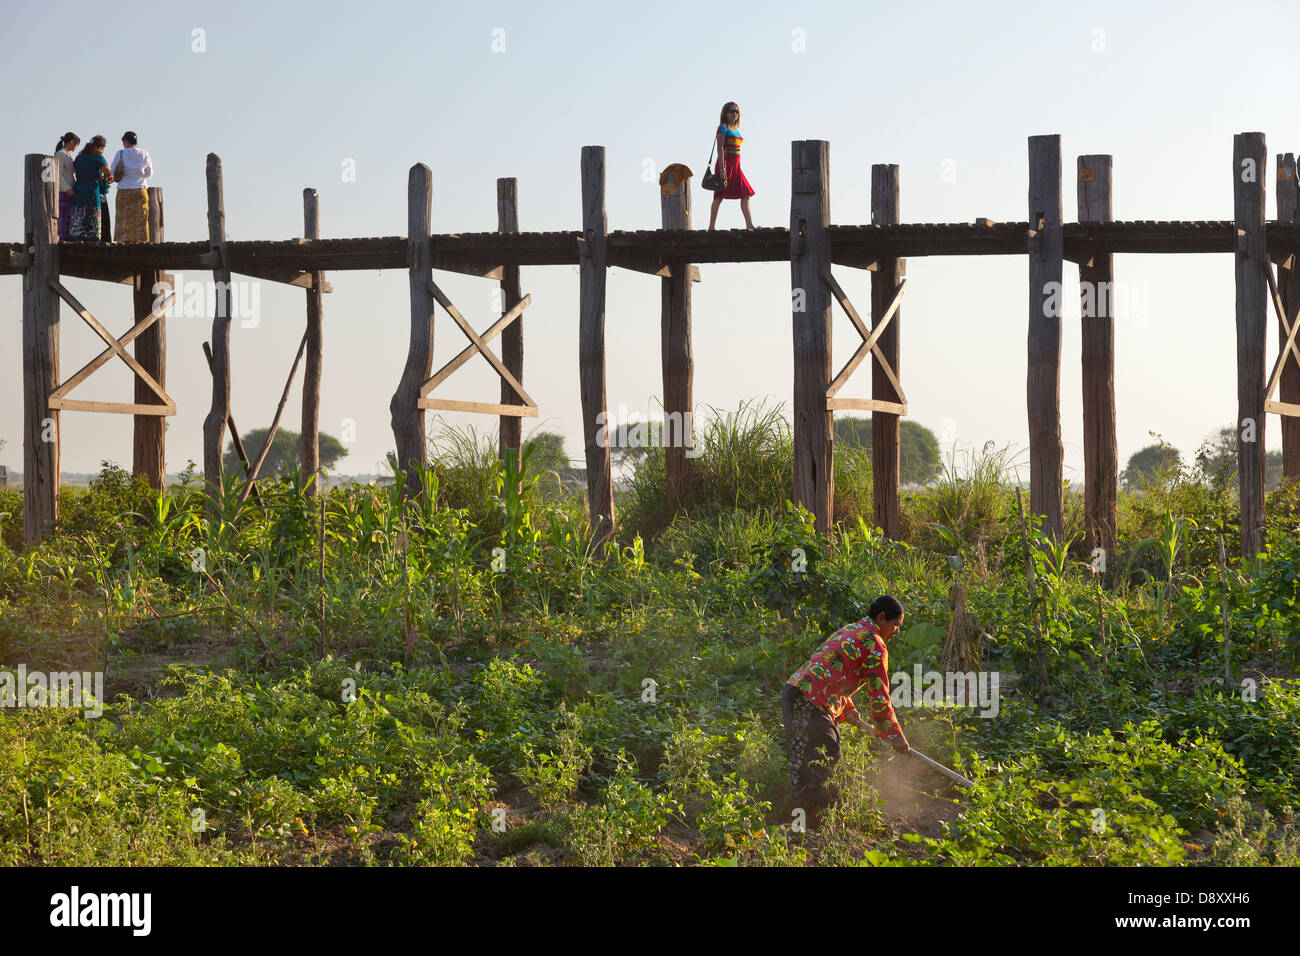 Well-dressed woman Crossing U Bein Teak Bridge across Taungthaman Lake, Myanmar, with farmer toiling in foreground - Stock Image